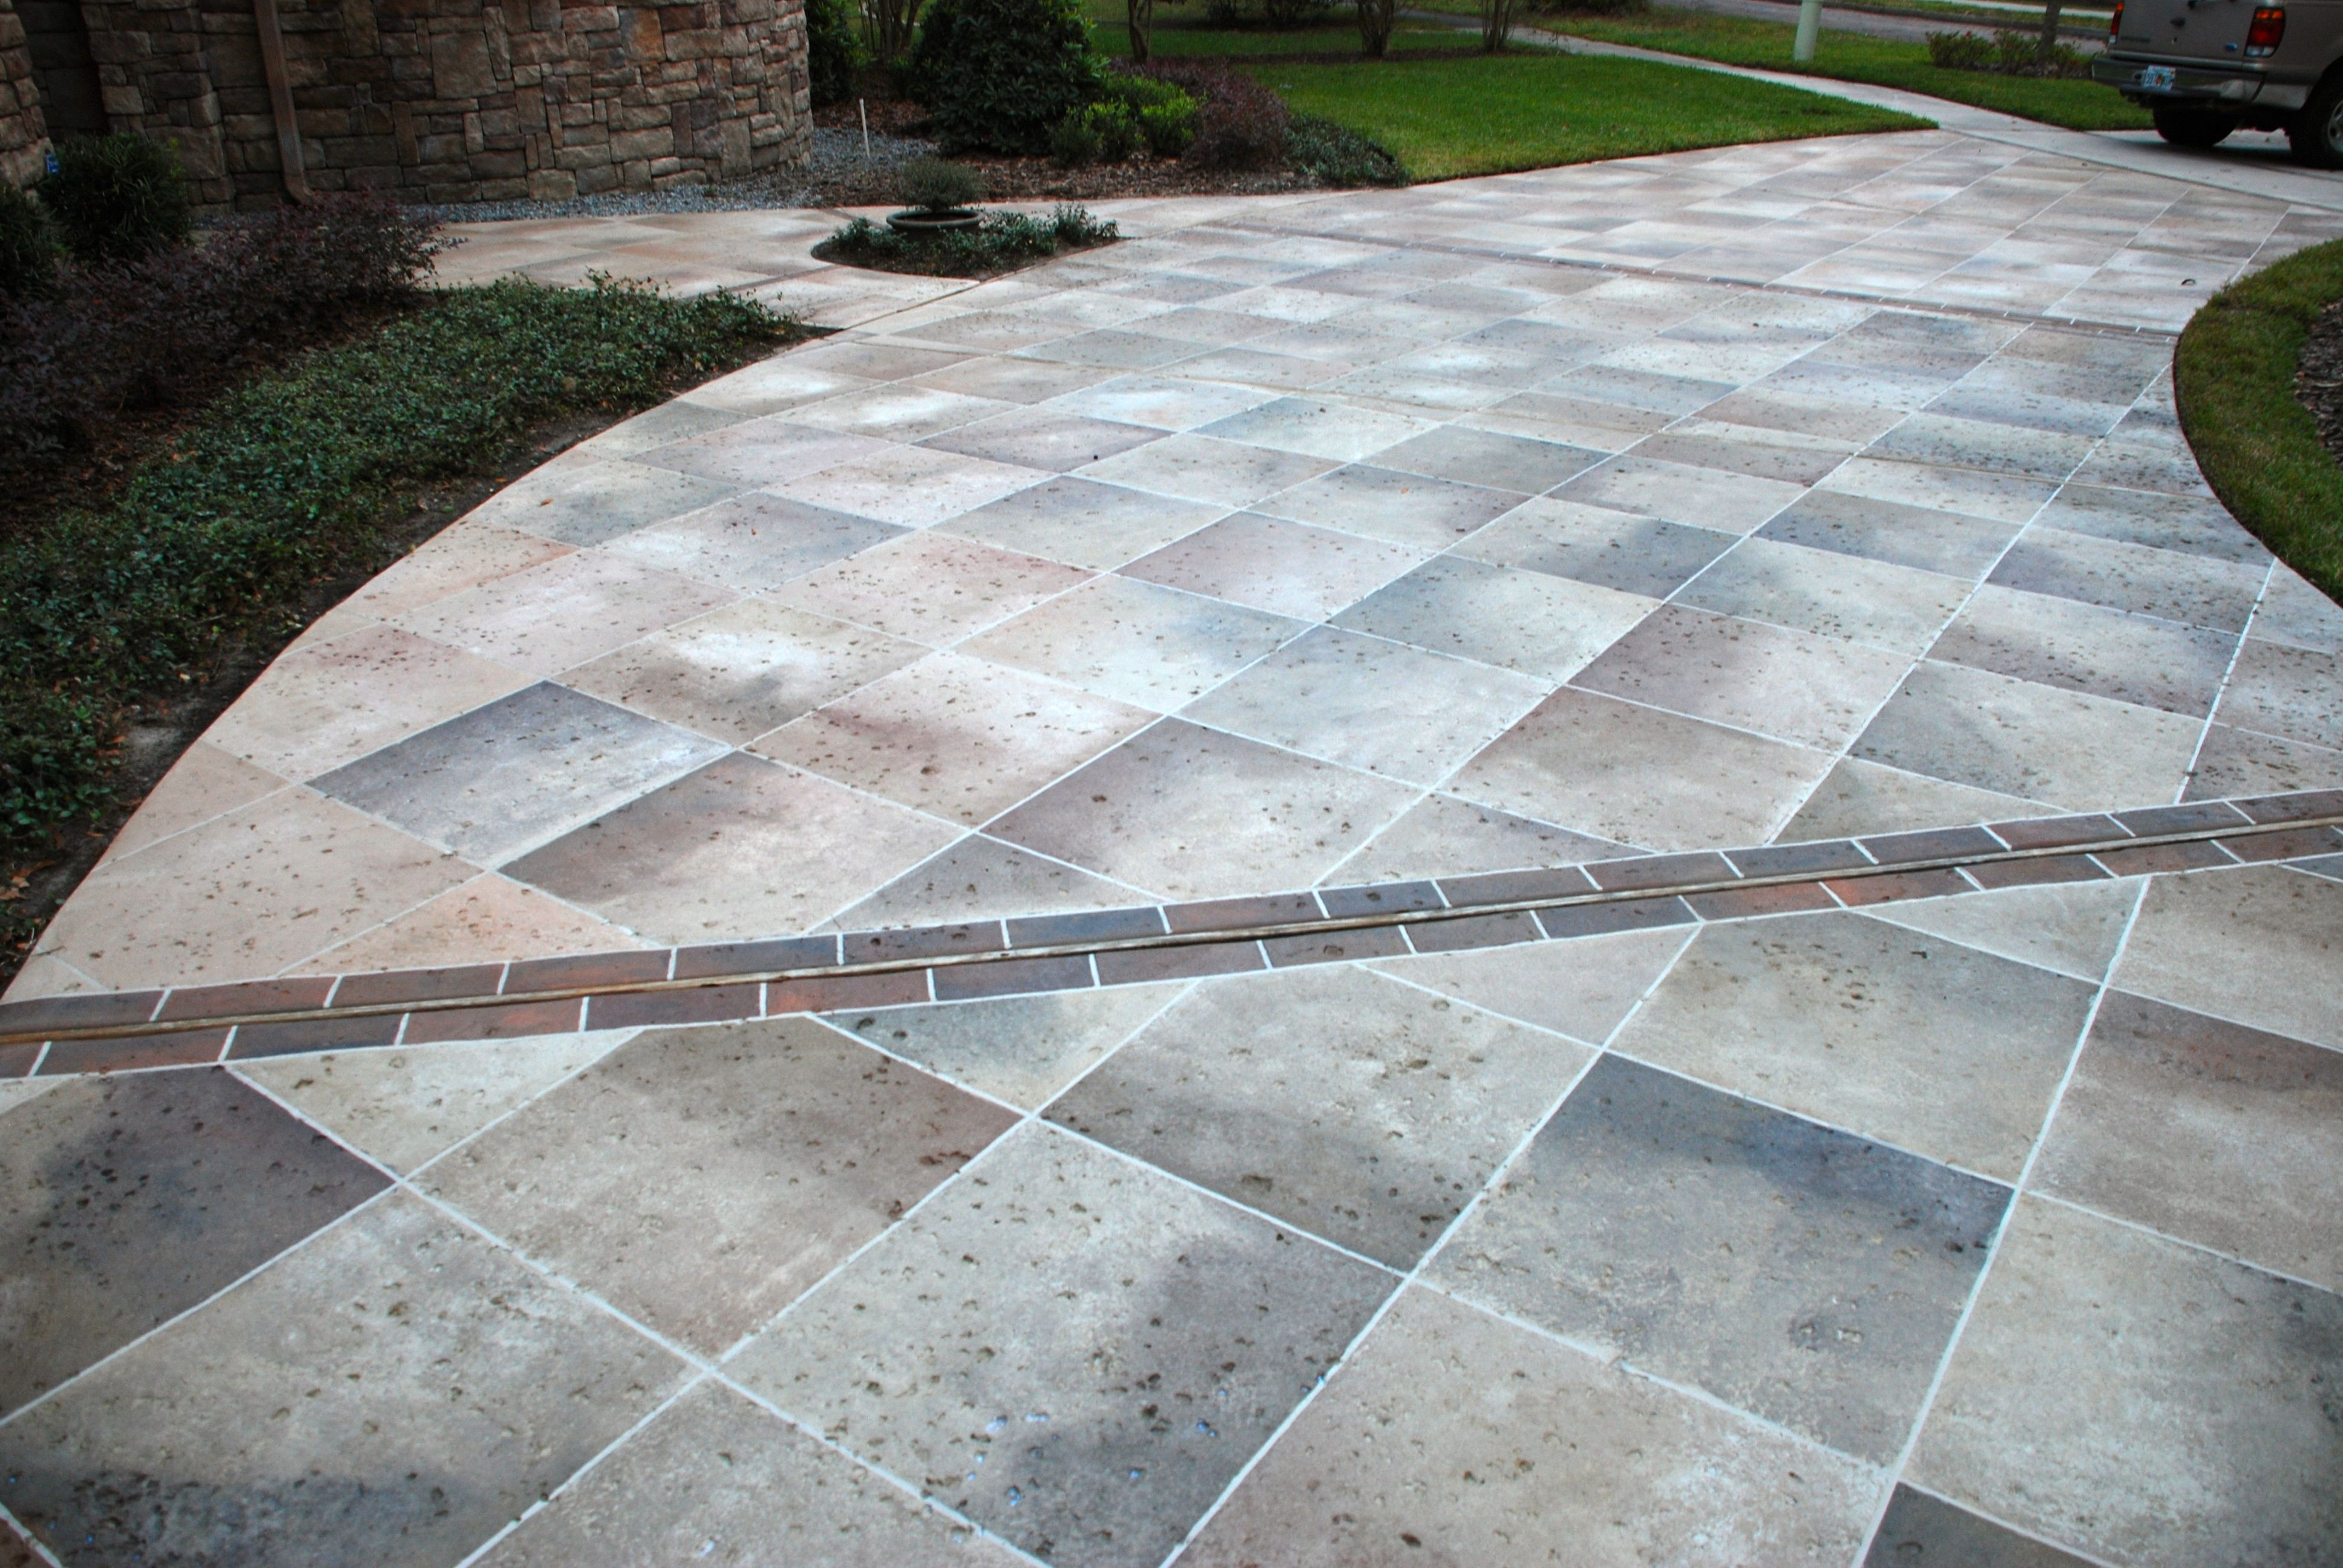 Concrete Driveway Design Ideas stamped concrete designs ideas for stamped concrete driveway with cool front yard patio designs Stained Concrete Driveways Concrete Staining Orlando Decorative Concrete Driveway Decorating Fun Diys Pinterest Driveway Design Idea Paint And